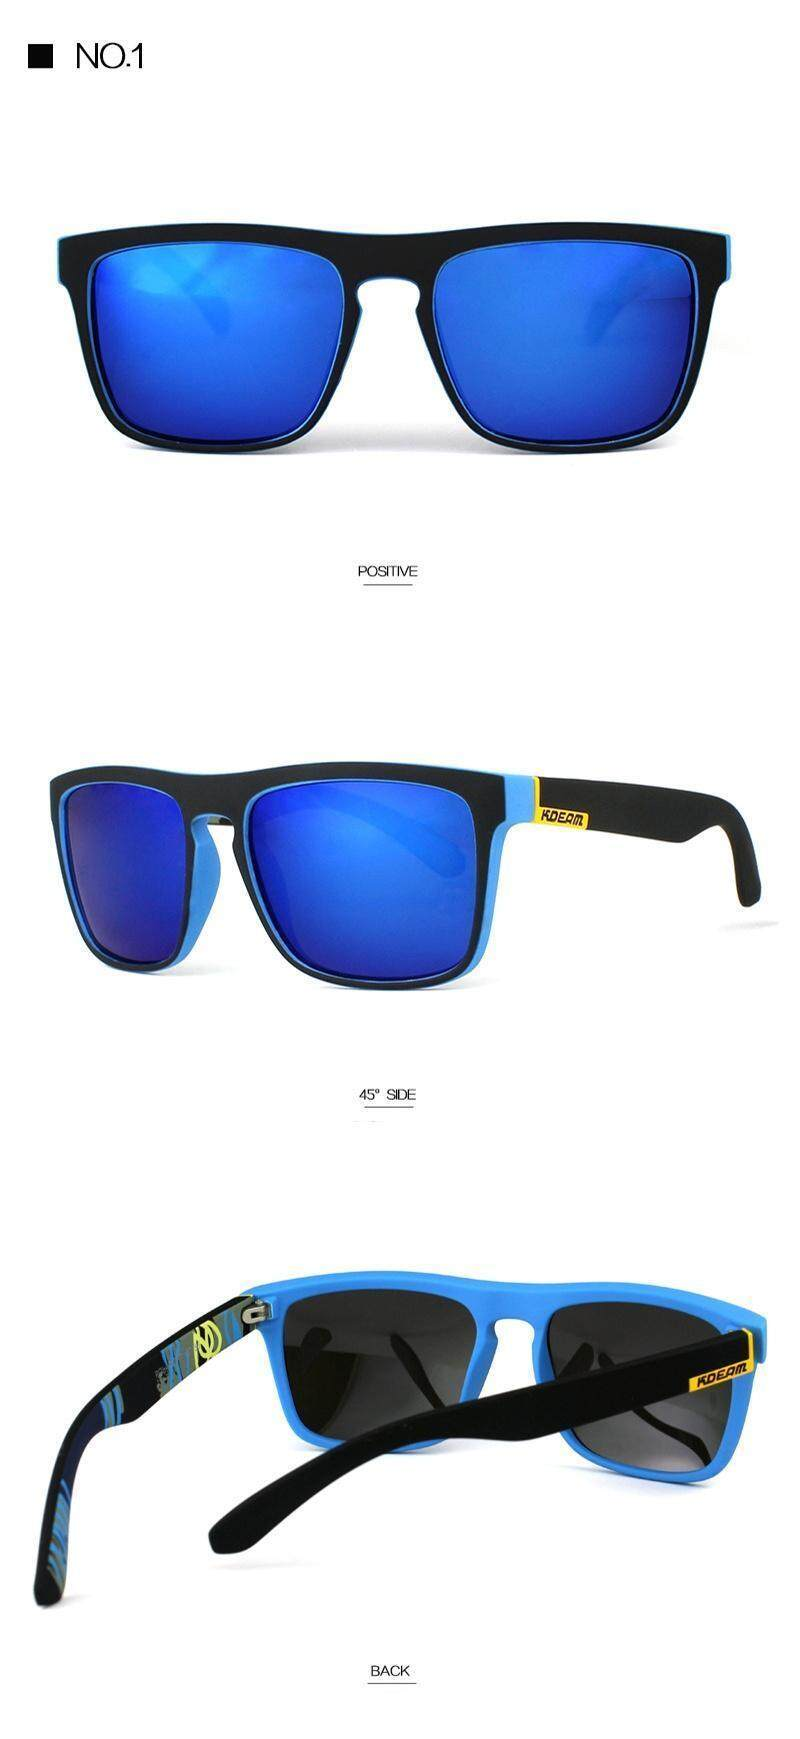 af317d3baa9 Product details of KDEAM Riding Sunglasses Polarized Glasses Driving  Outdoor UV400 Fishing Eyewear